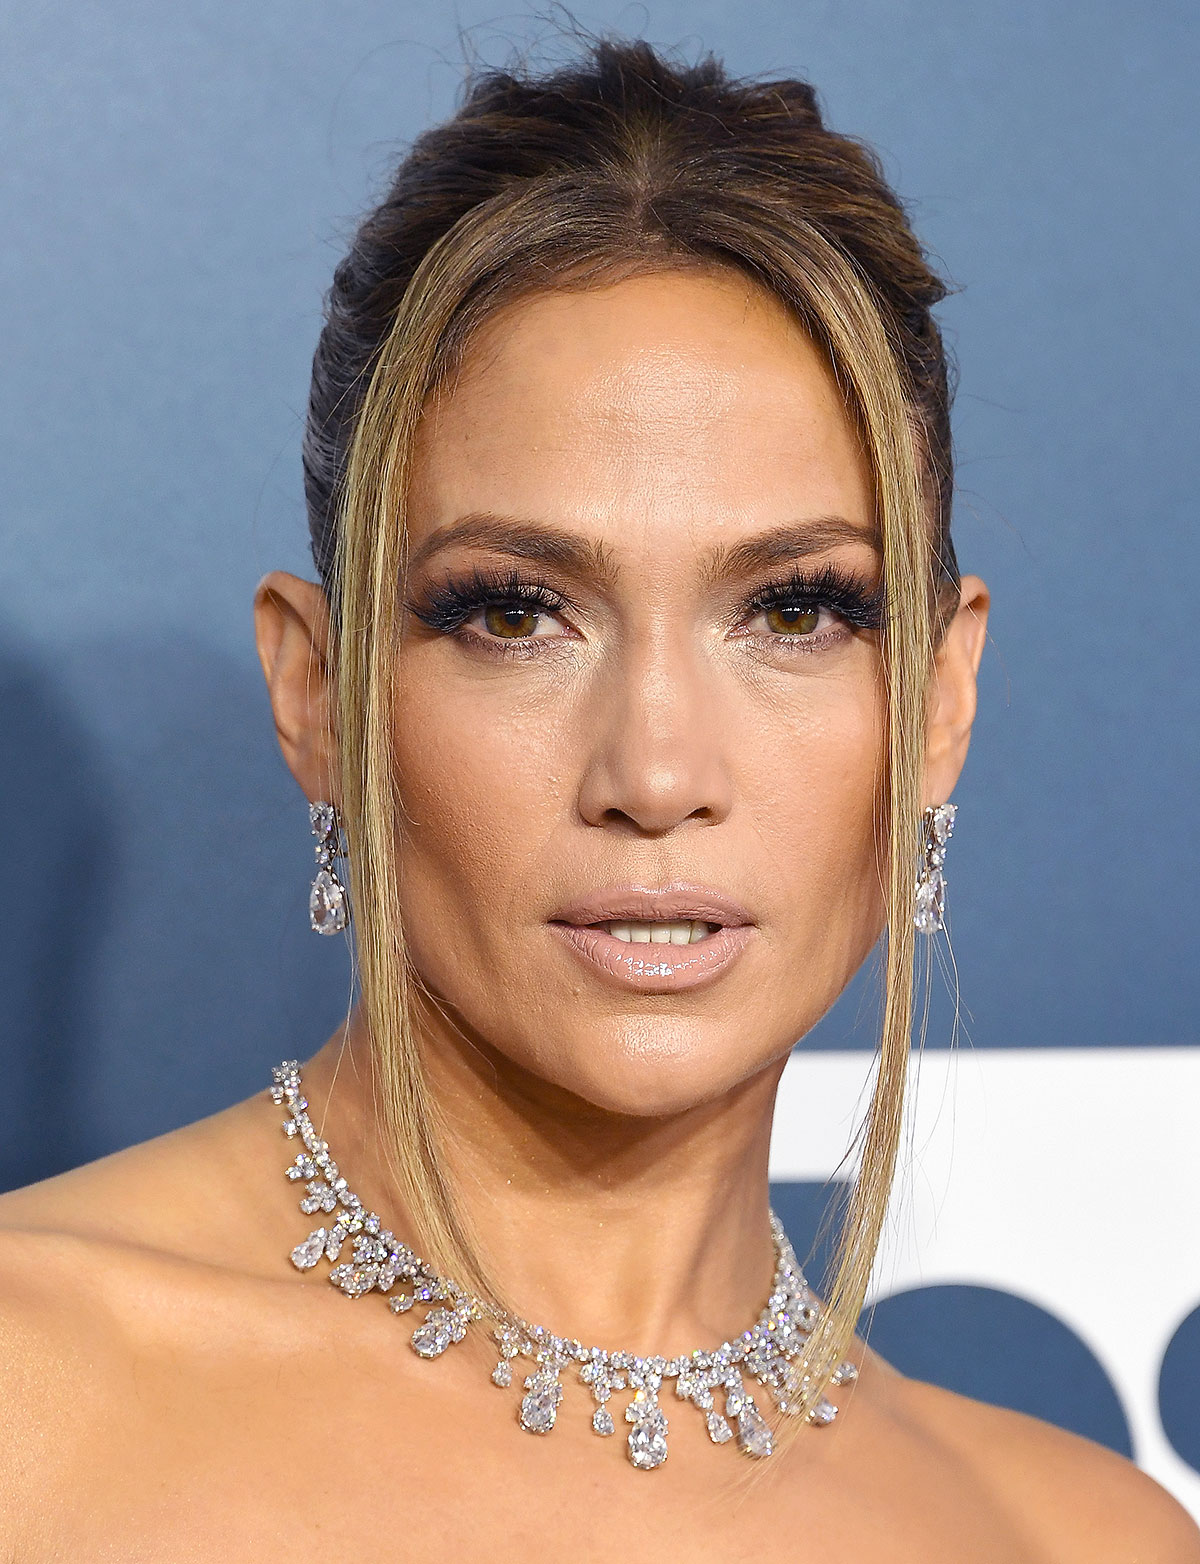 Jennifer Lopez attends the 26th Annual Screen ActorsGuild Awards at The Shrine Auditorium on January 19, 2020